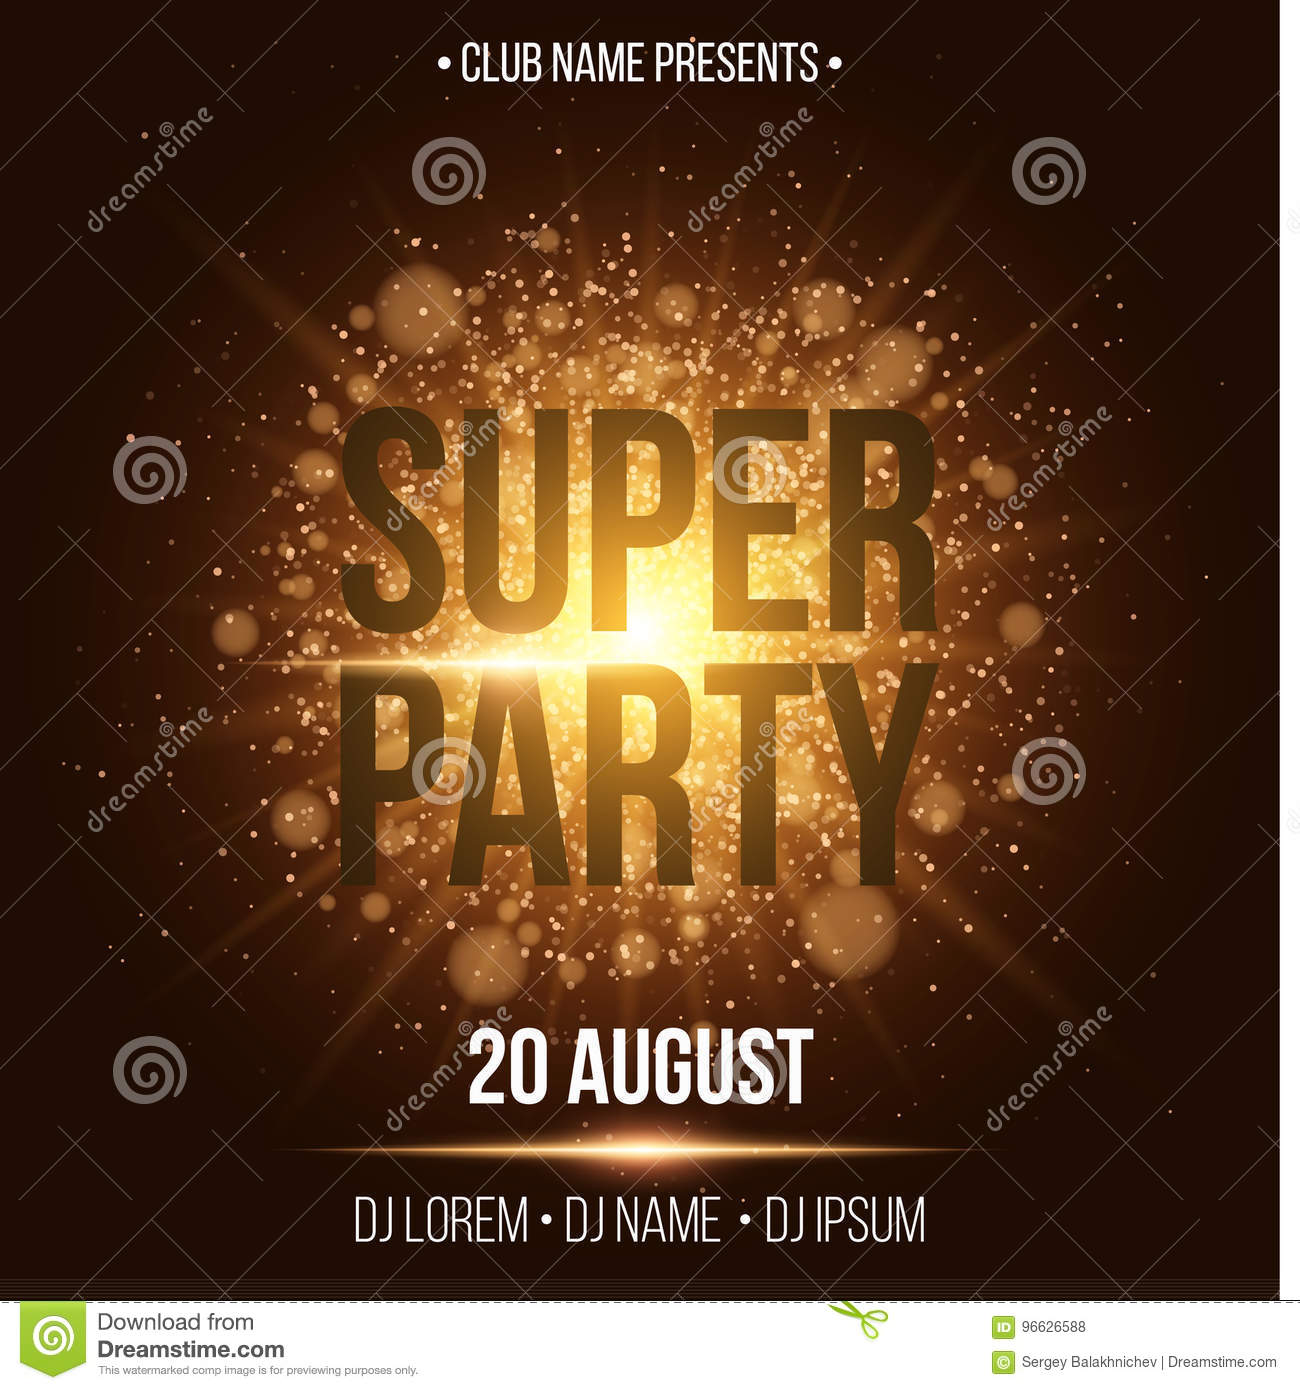 A golden flash with gold dust. Night party. Enter your DJ and club name.  Poster for your project. Gold glare bokeh. Vector illustration c989447a3